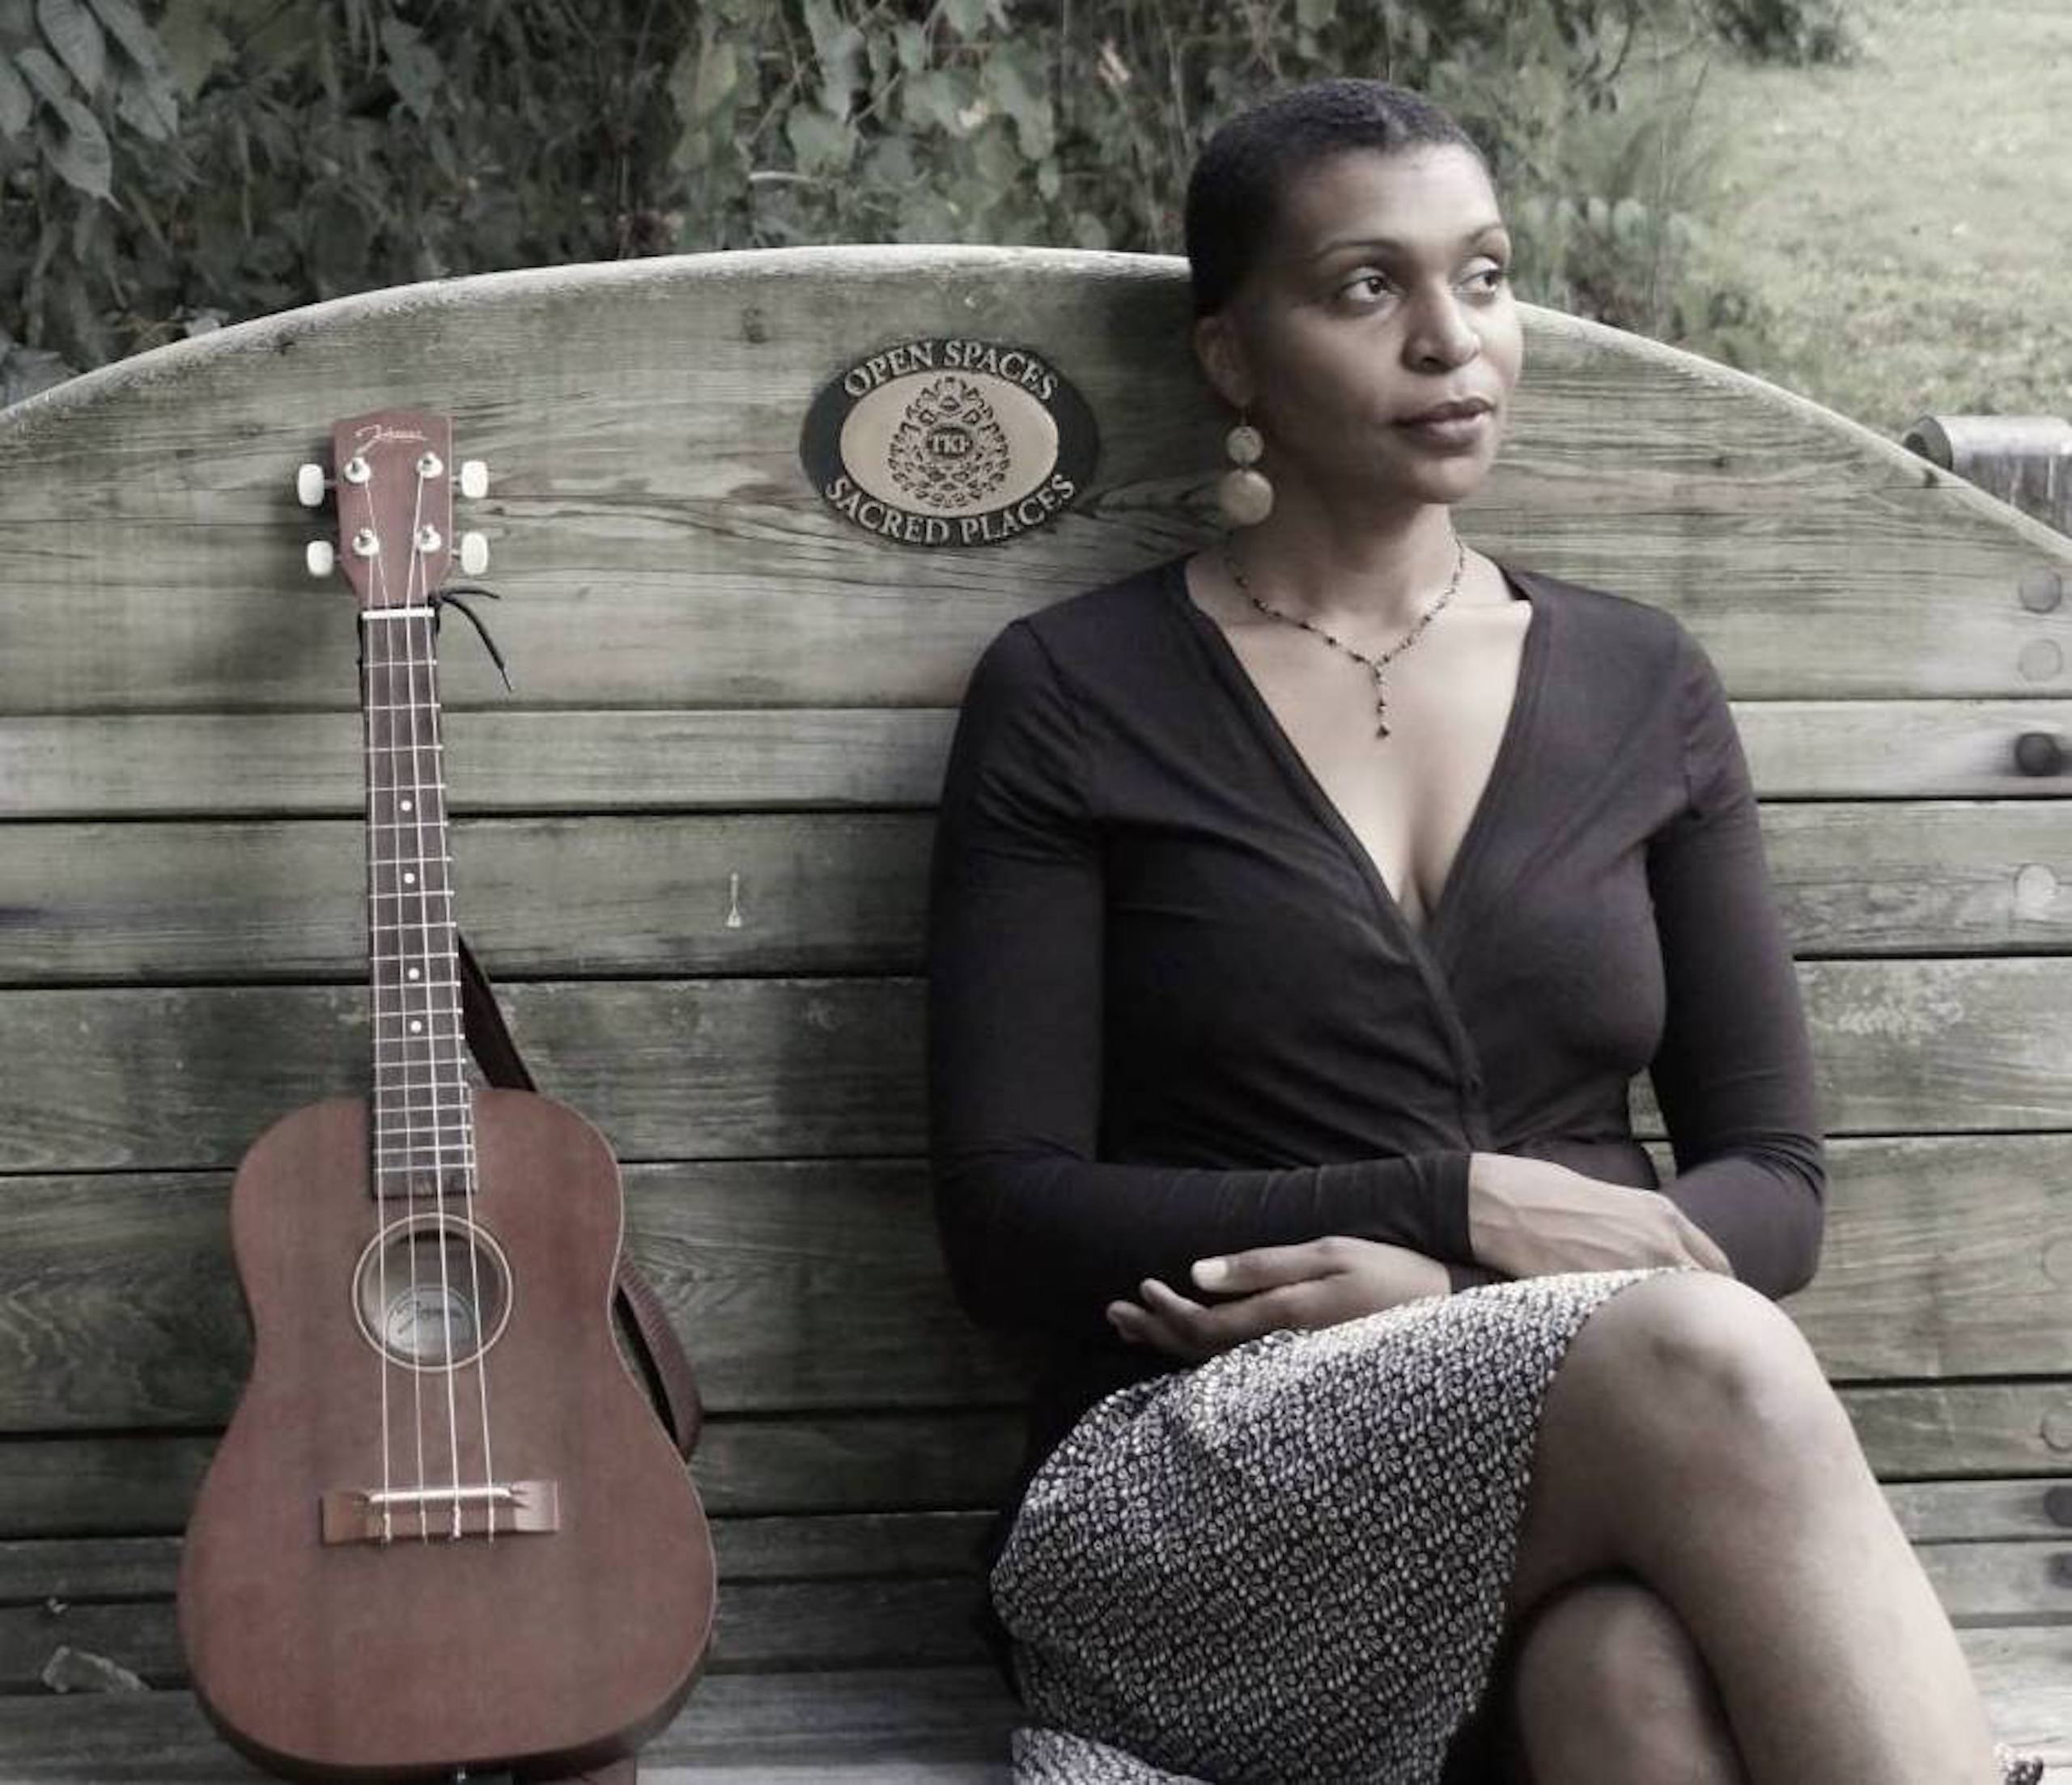 Courtney Dowe sits on a wooden bench with a high back with a standing brown guitar on her right. Her legs are crossed and her arms are crossed on her lap. She wears a black top, a patterned skirt, earrings, and a necklace, and she has very short hair. Behind her is lush greenery.